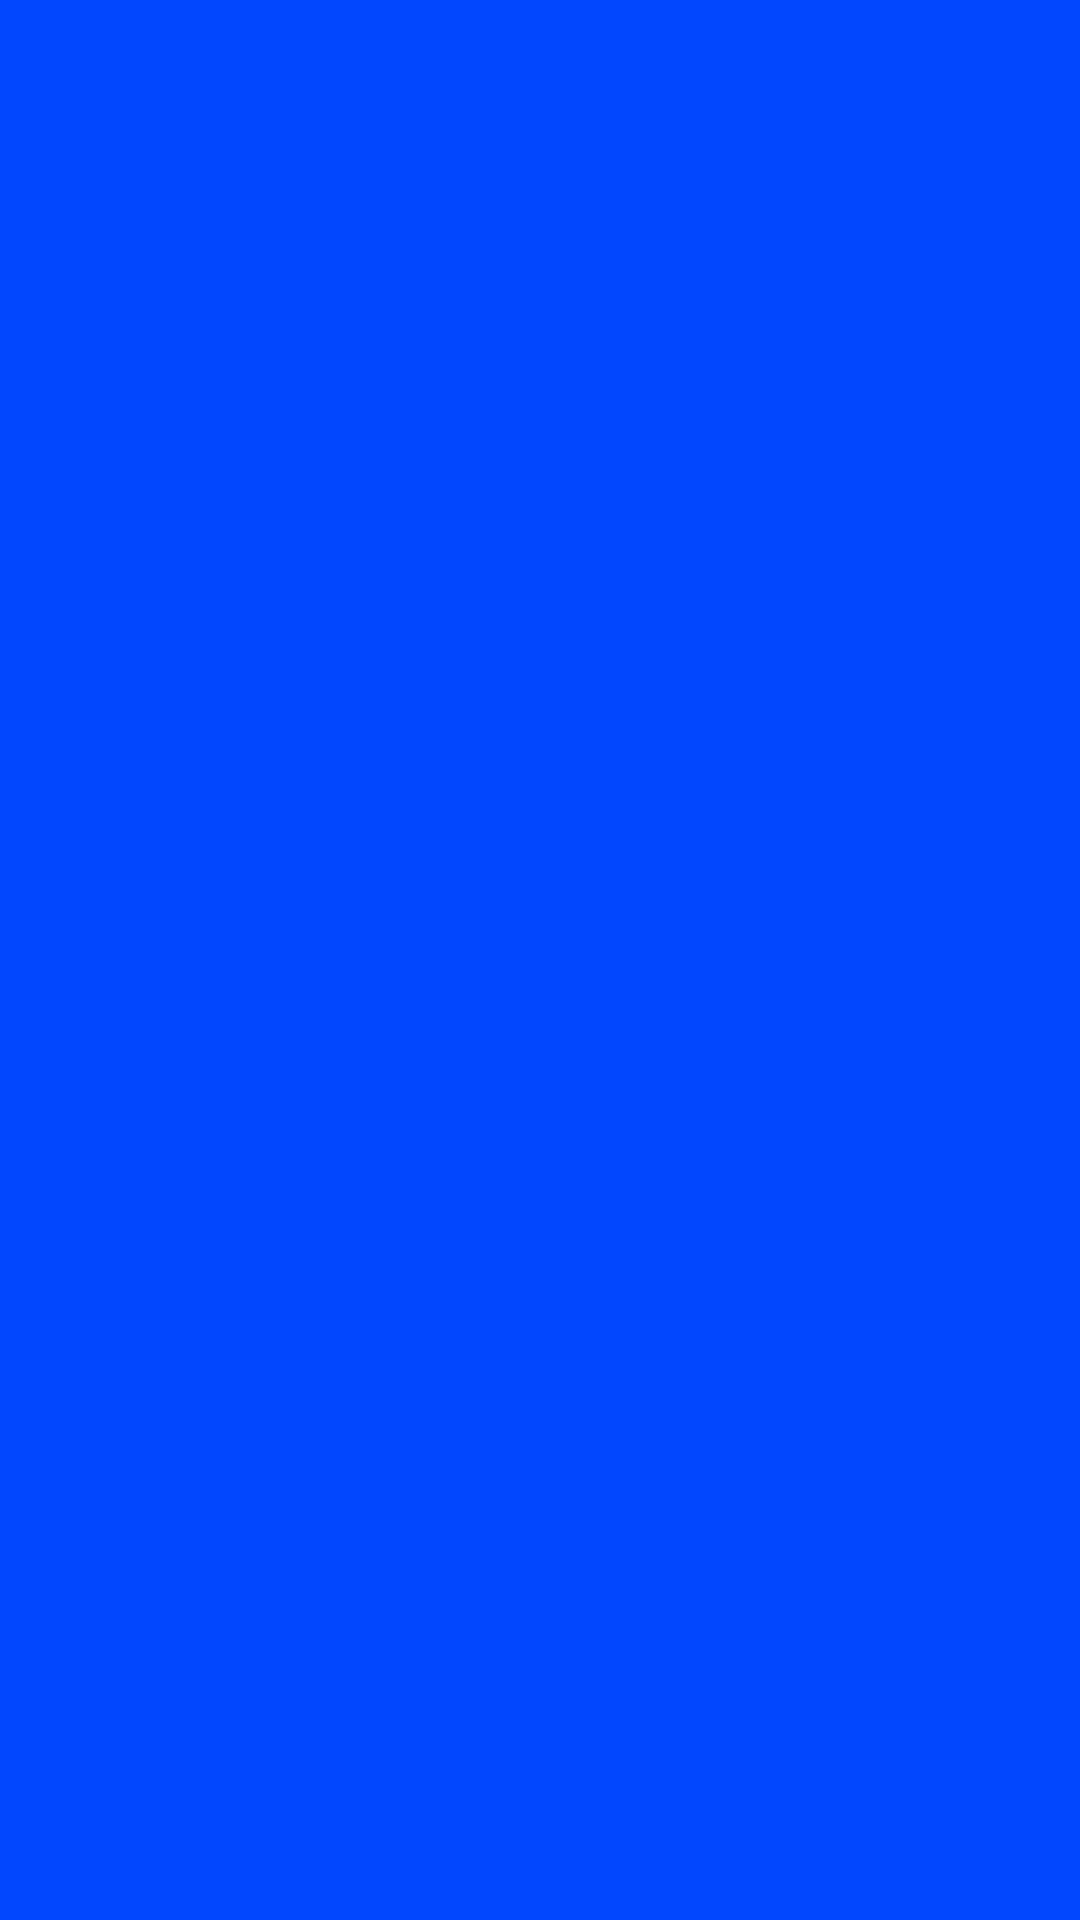 1080x1920 Blue RYB Solid Color Background